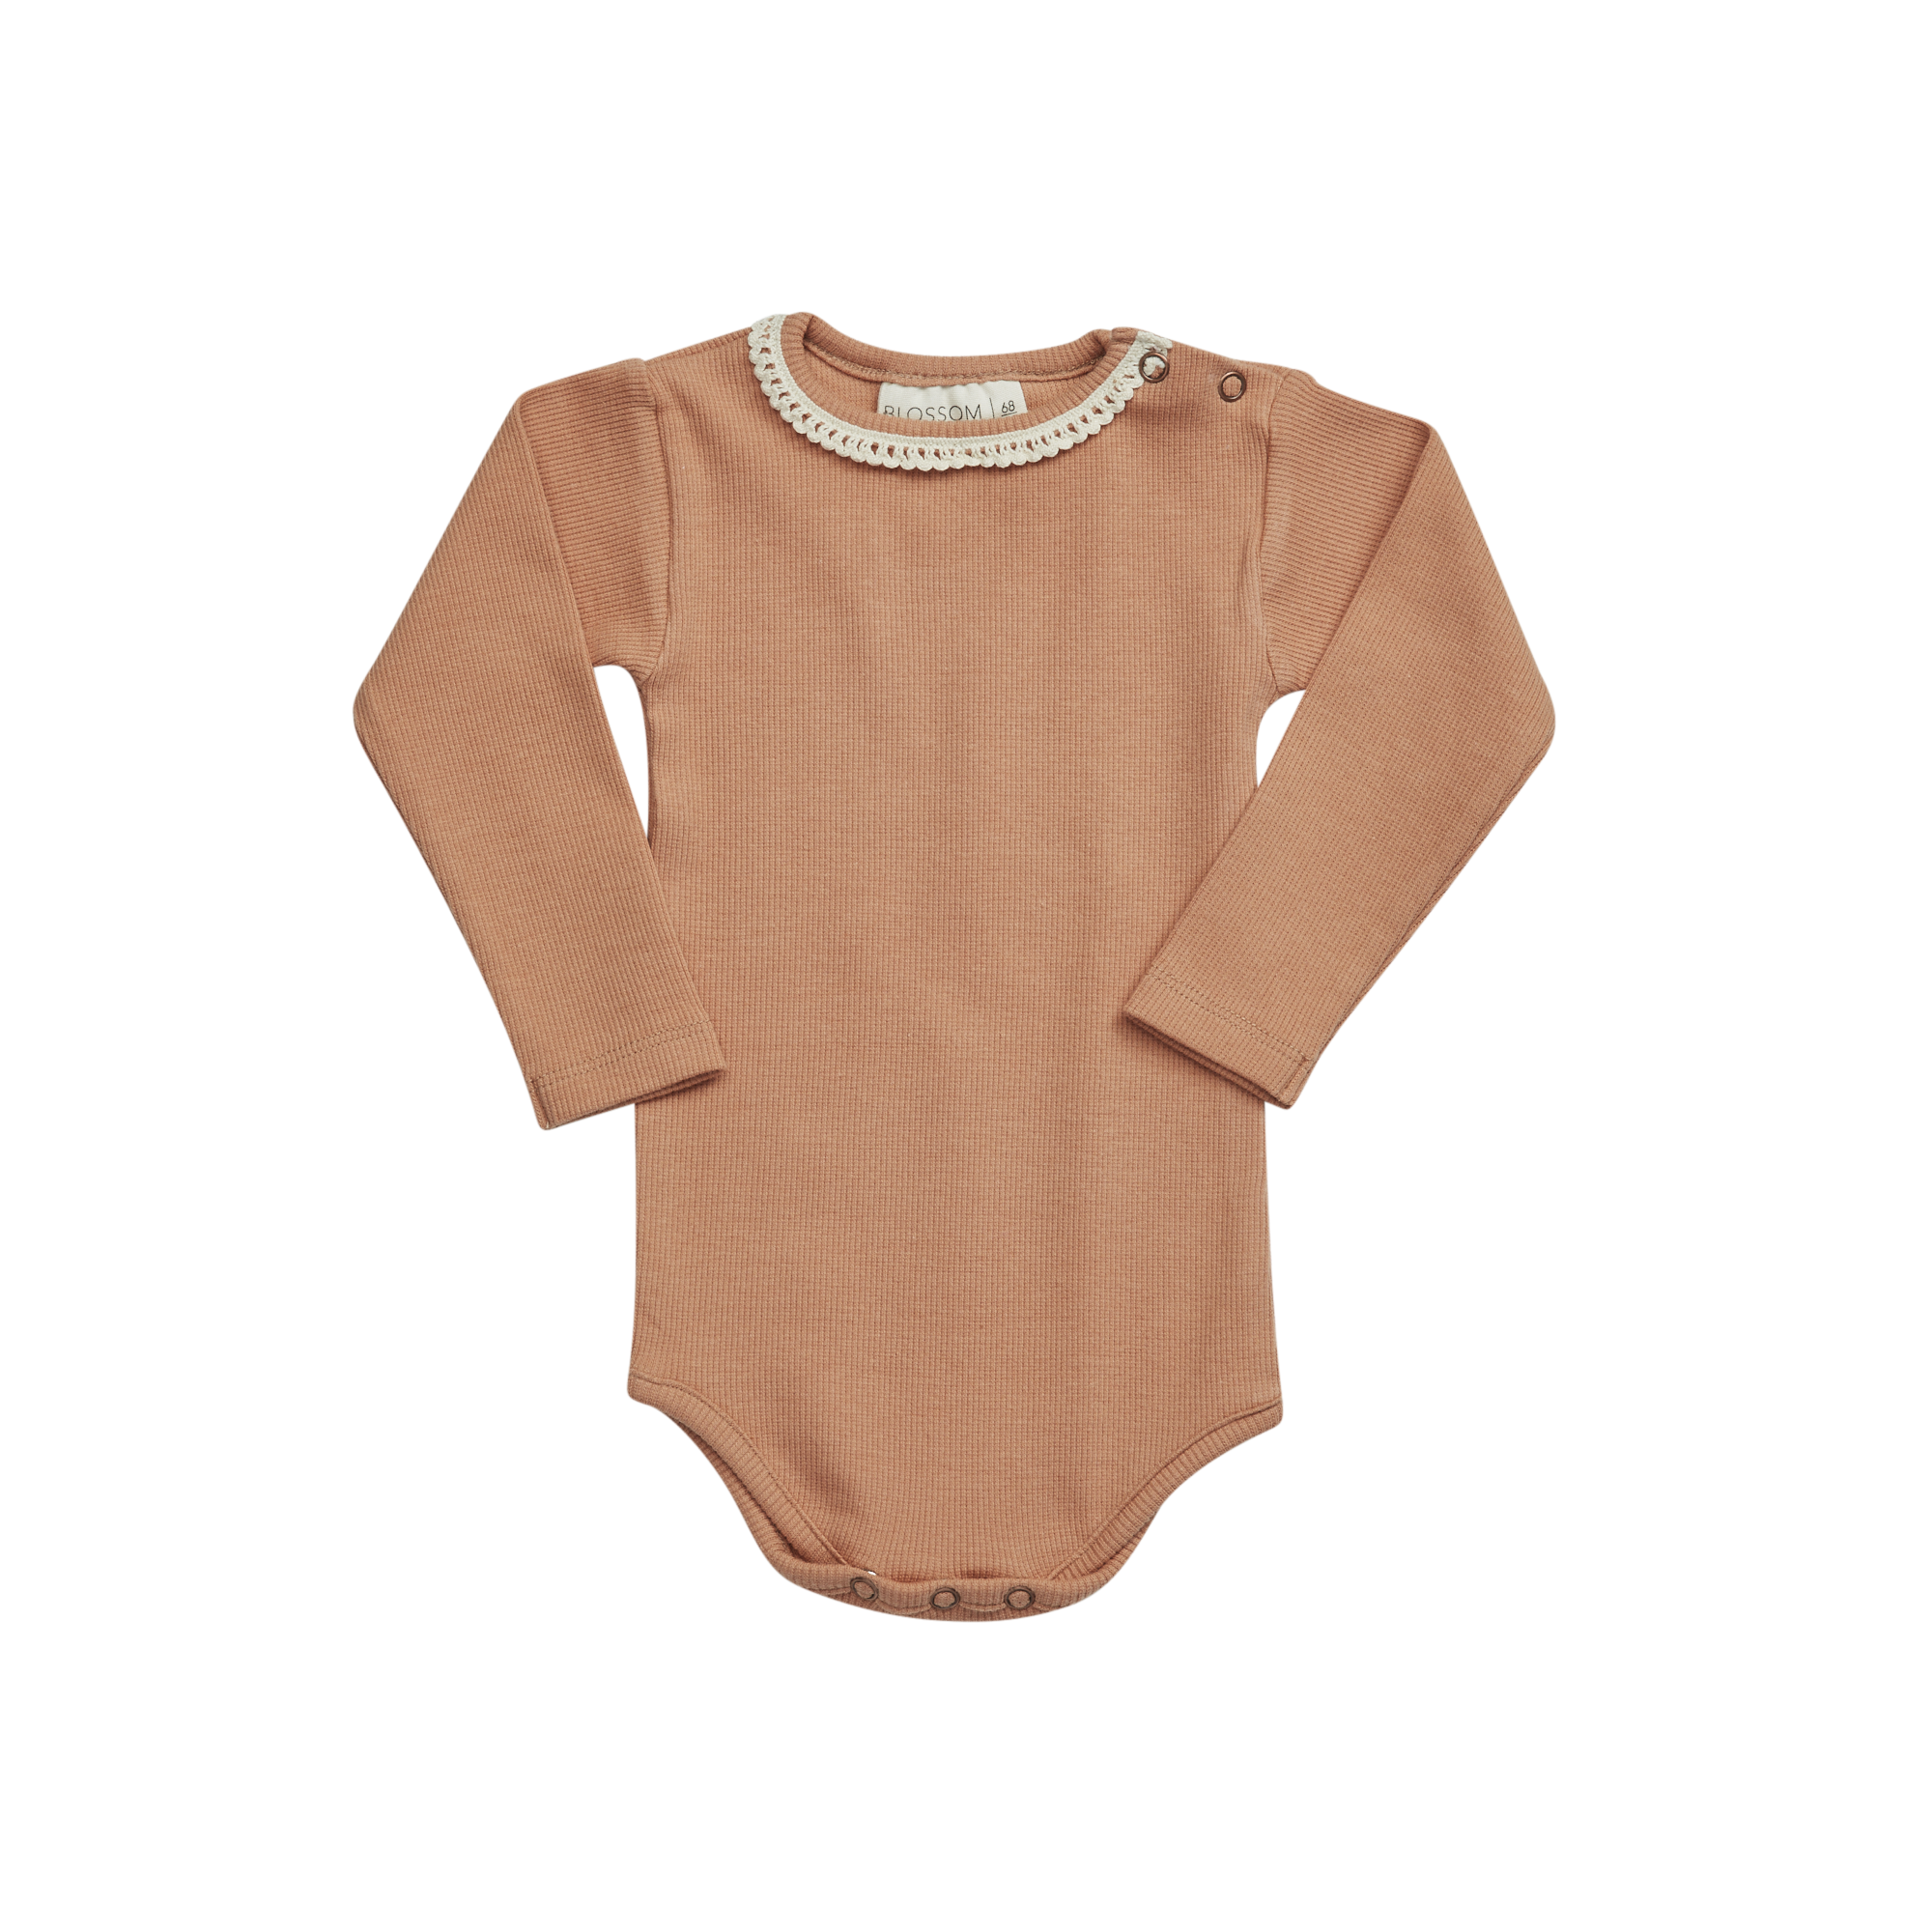 Blossom Kids Body long sleeve with lace - Deep Toffee-1